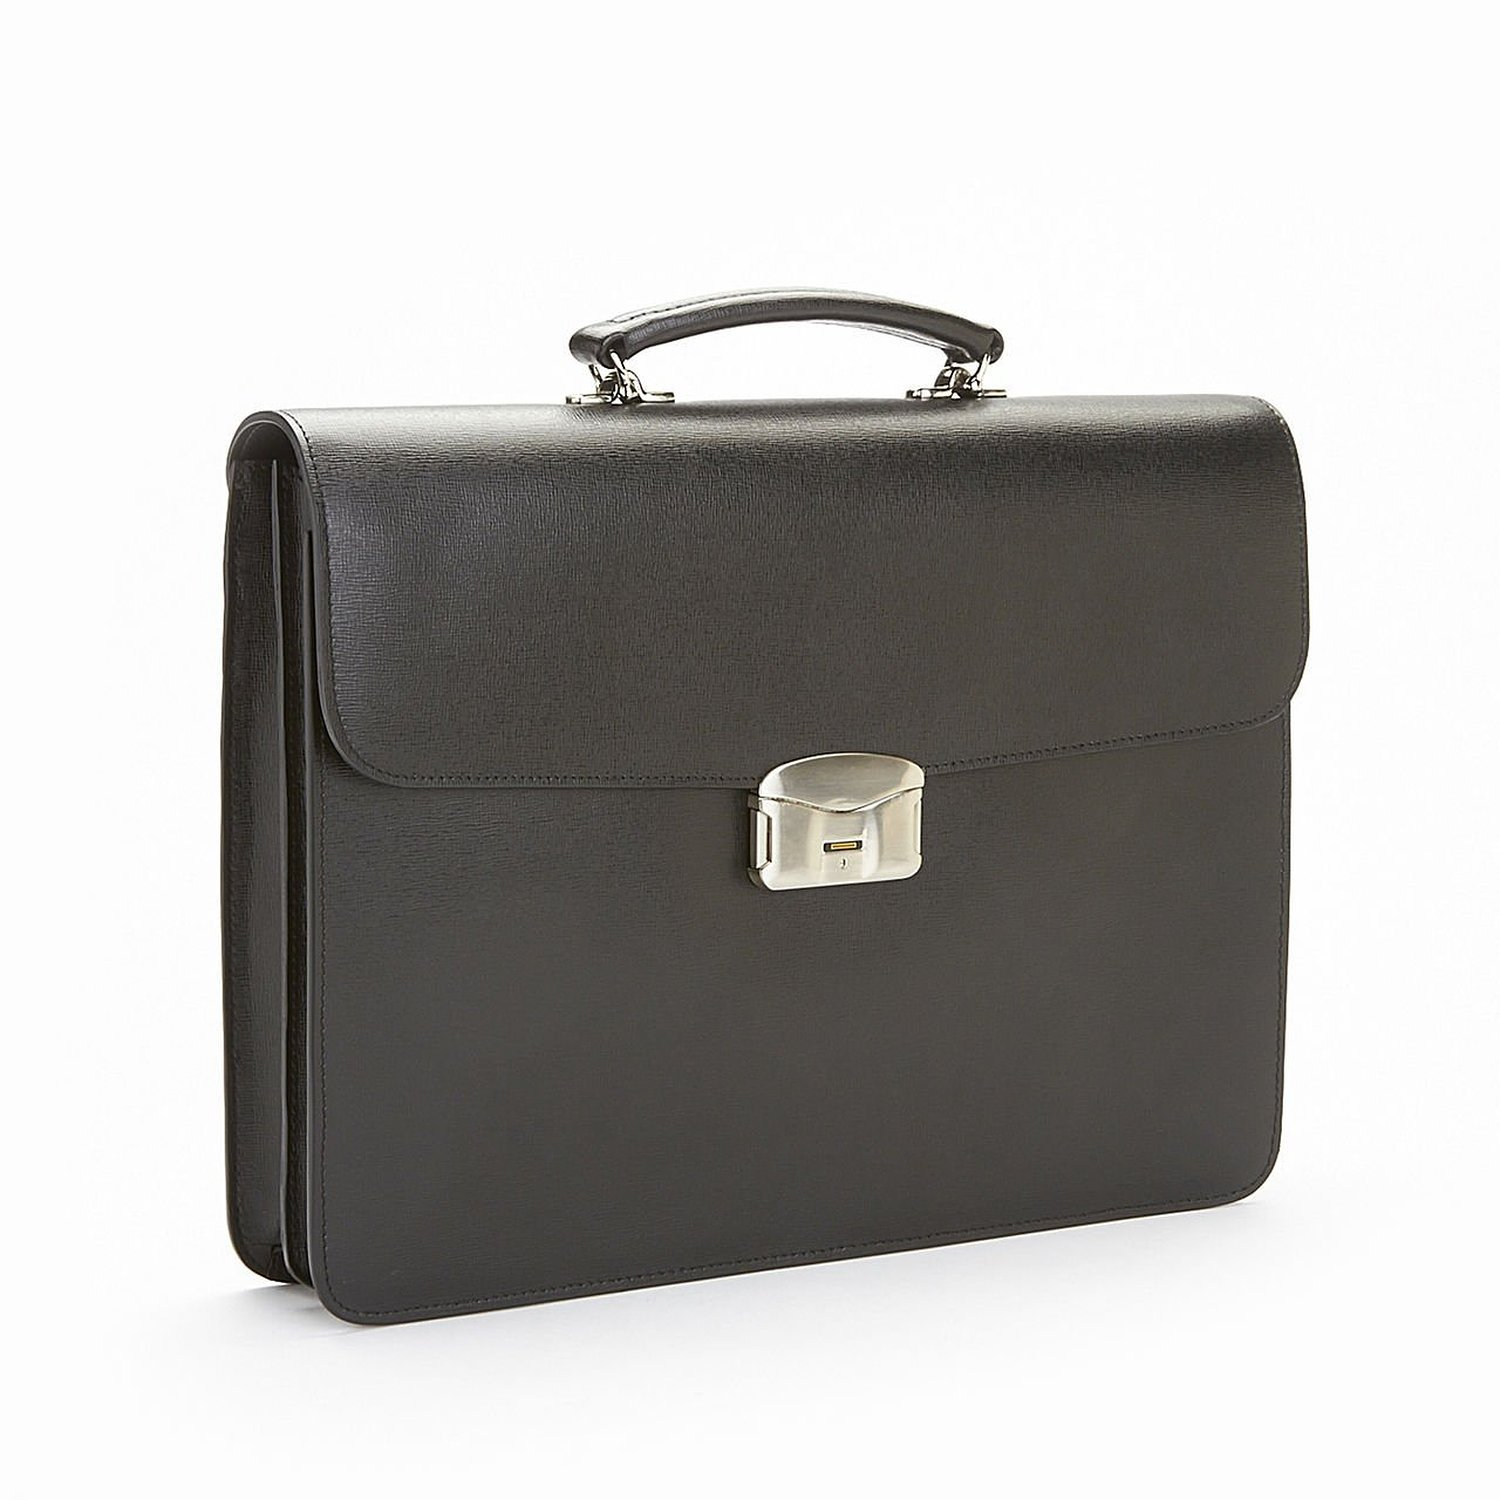 Royce Leather RFID Blocking Executive Travel Briefcase in Saffiano Leather, Black by Royce Leather